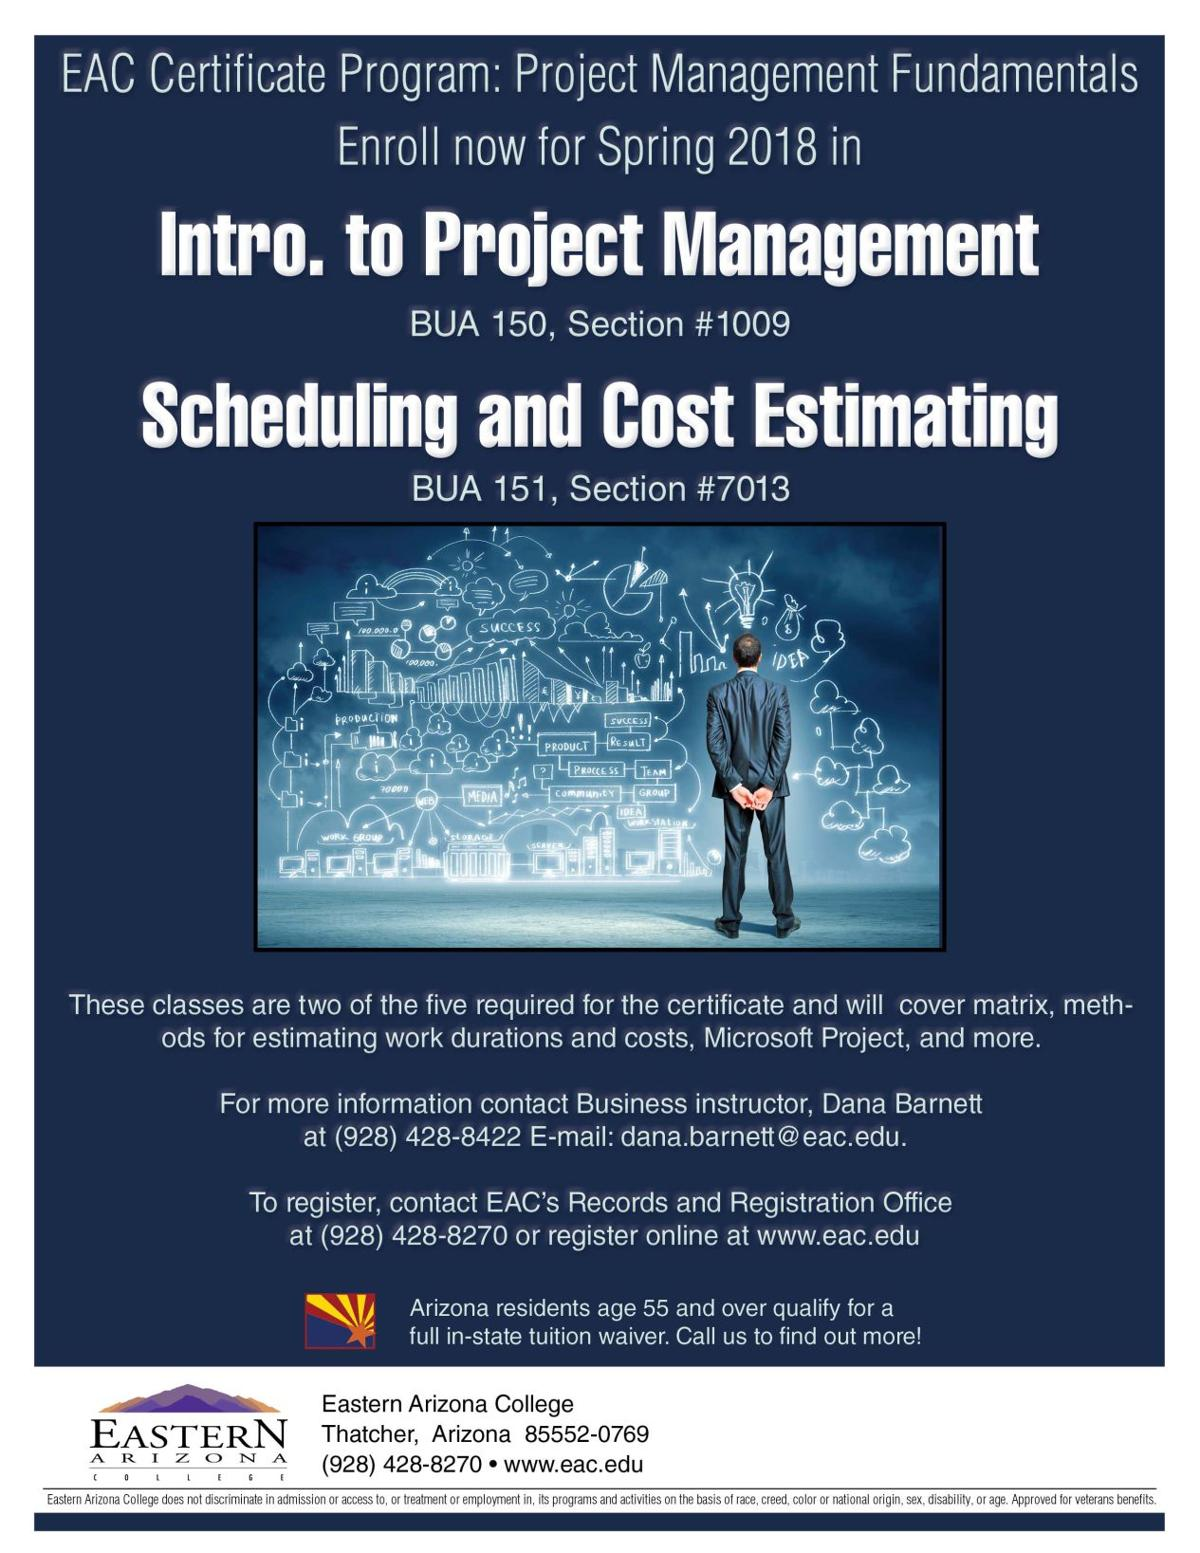 Project management fundamentals certificate program at eac local project management 1betcityfo Image collections